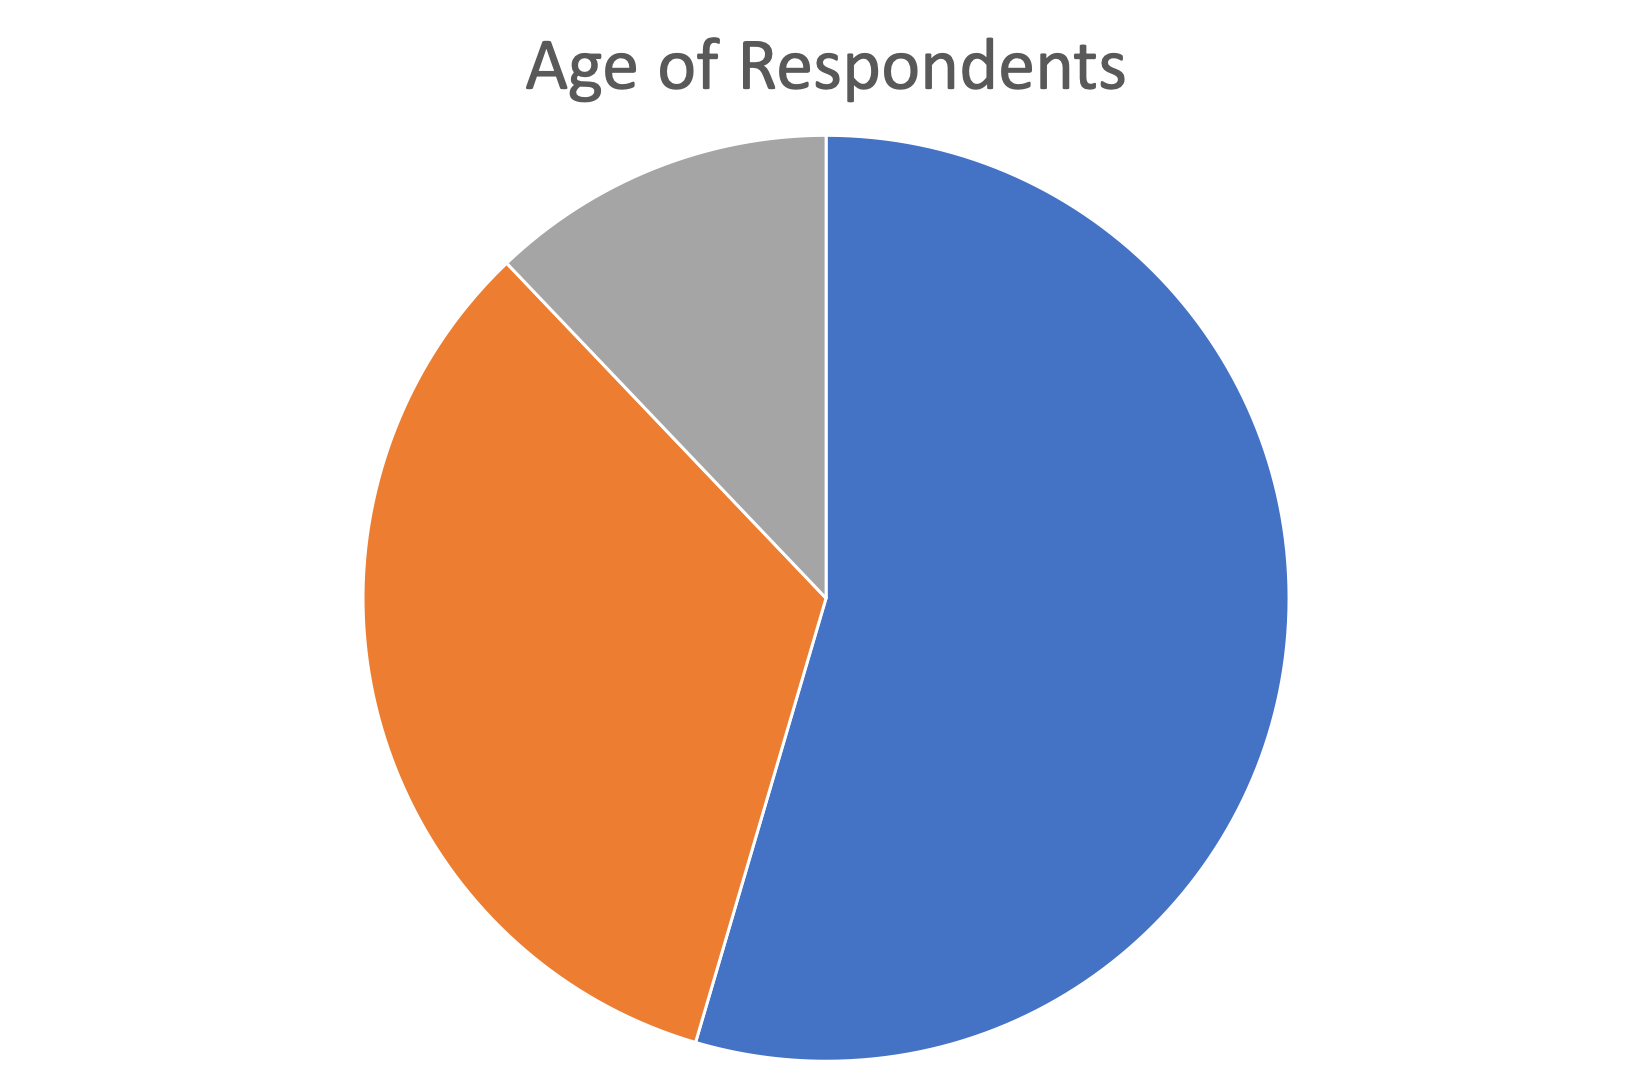 pie chart showing distribution of age of participants